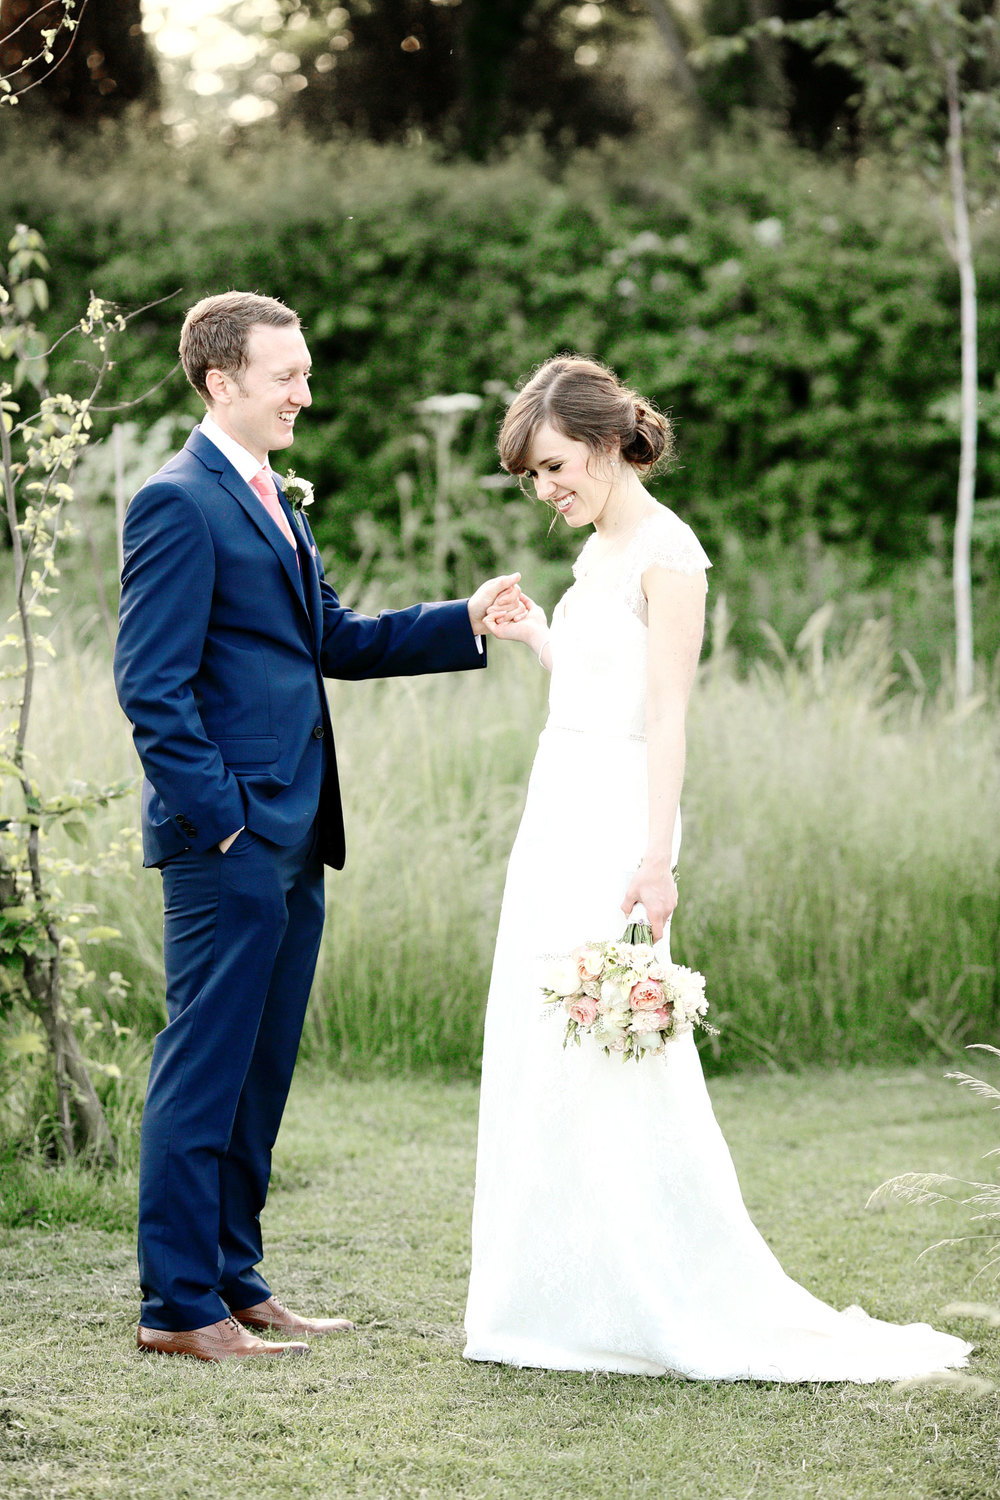 South Farm wedding romantic couple photo